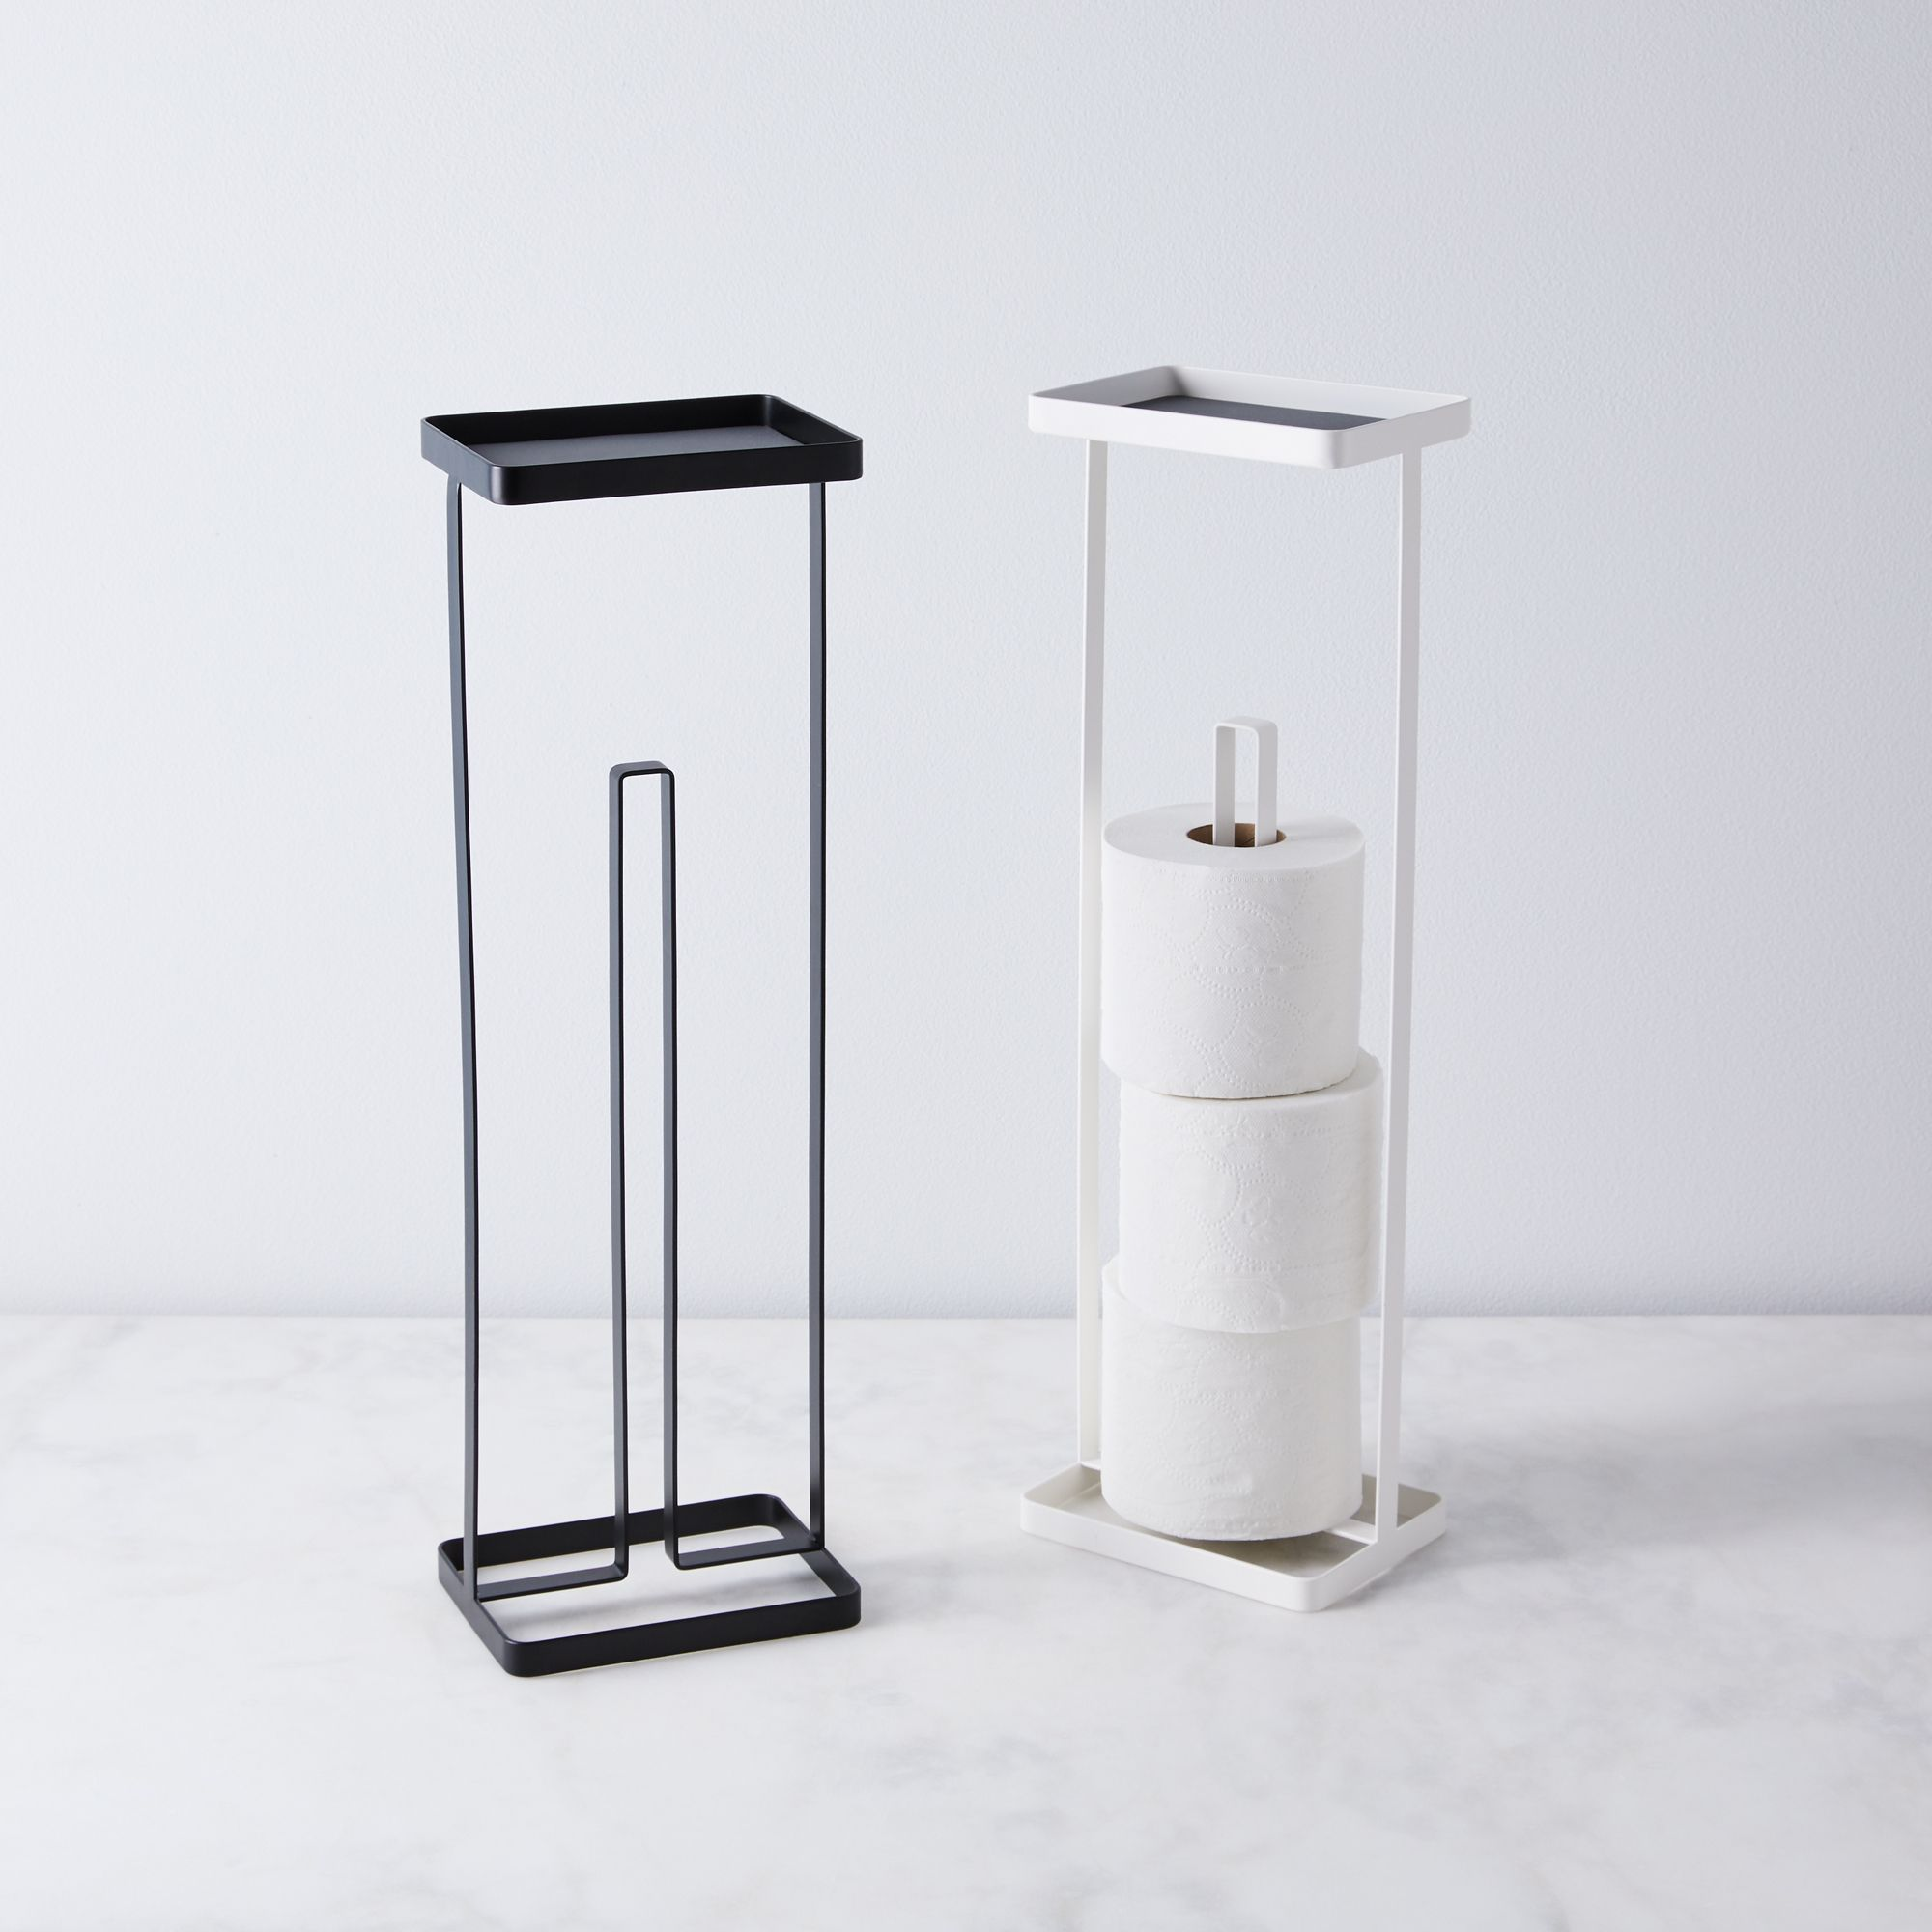 Modern toilet paper stands in black and white